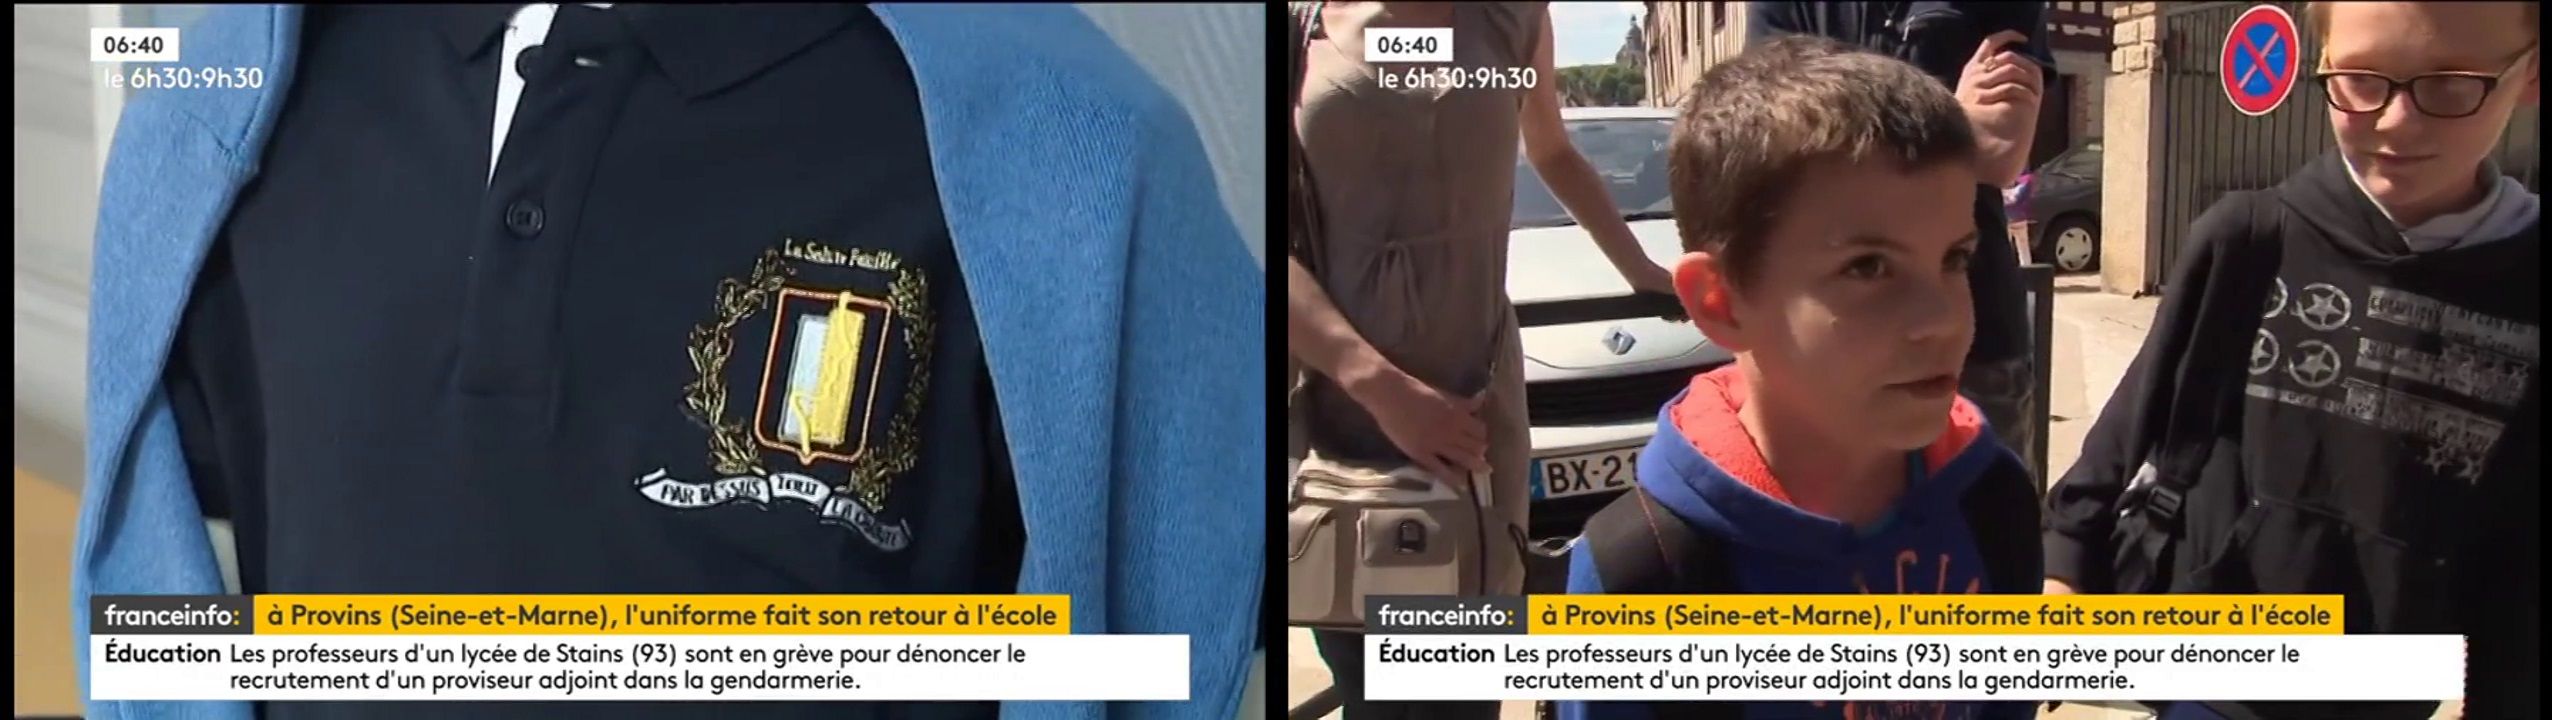 uniforme-franceinfo